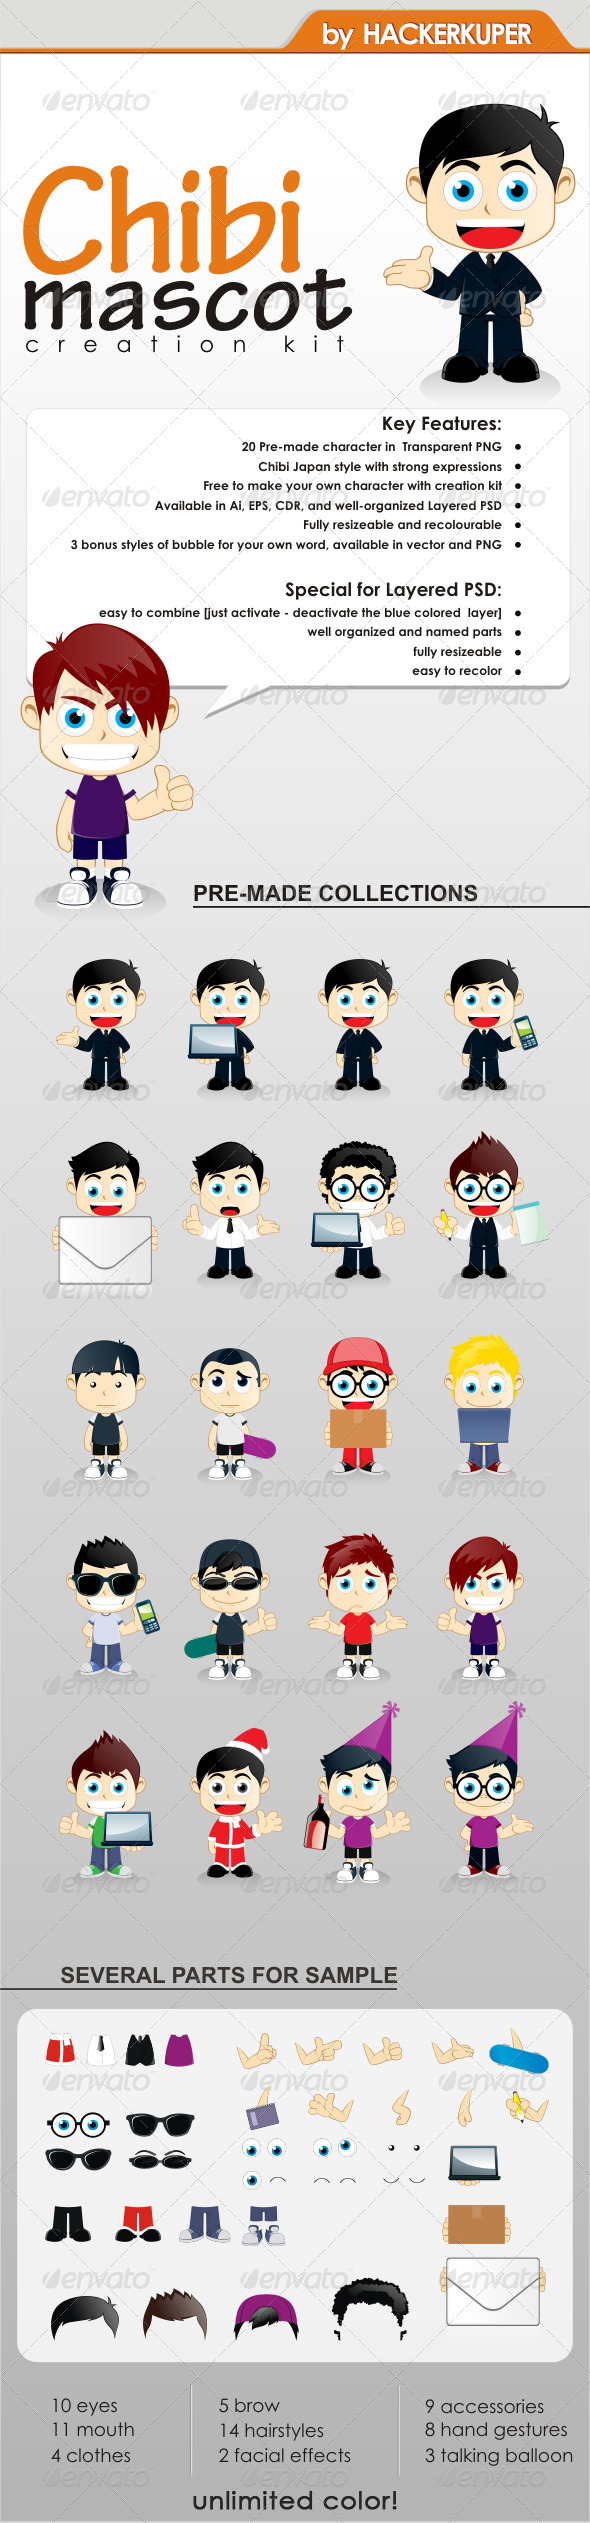 Chibi Mascot Creation Kit - For General Business - Characters Vectors